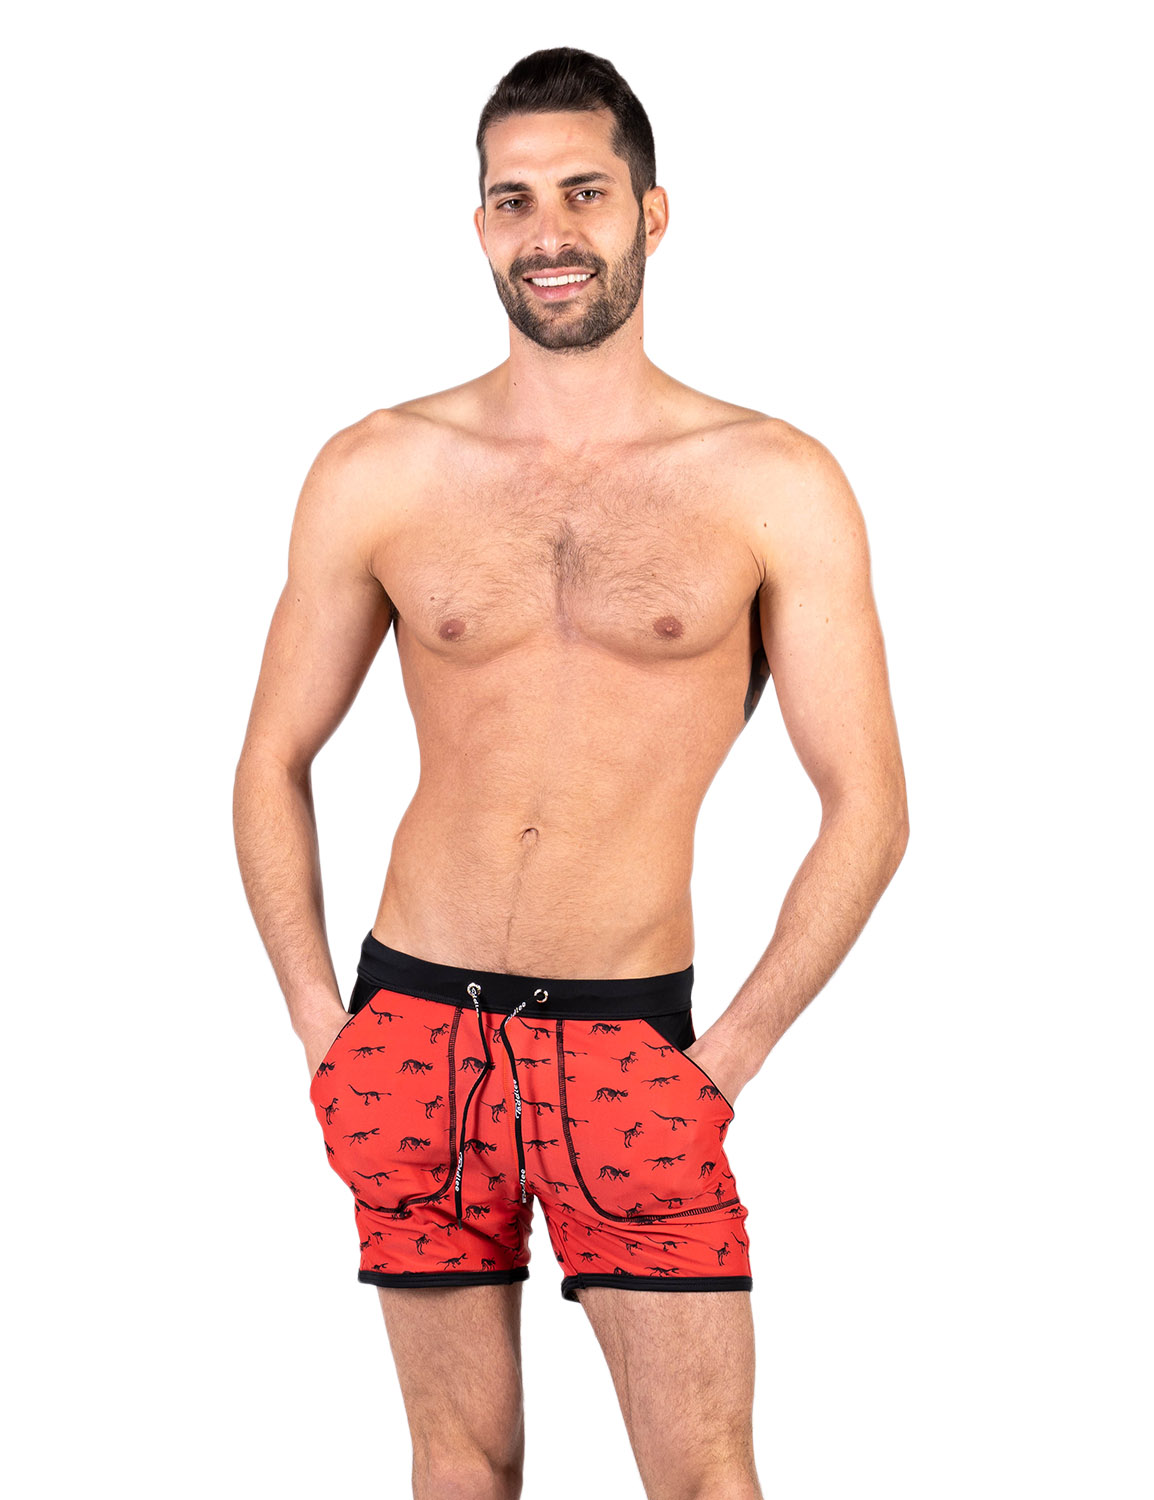 aea6fbfa0c Taddlee Mens Swimwear Bikini Swim Trunks Briefs Shorts Bathing Suits Square  Cuts Item NO: TAD-2019QZ-16